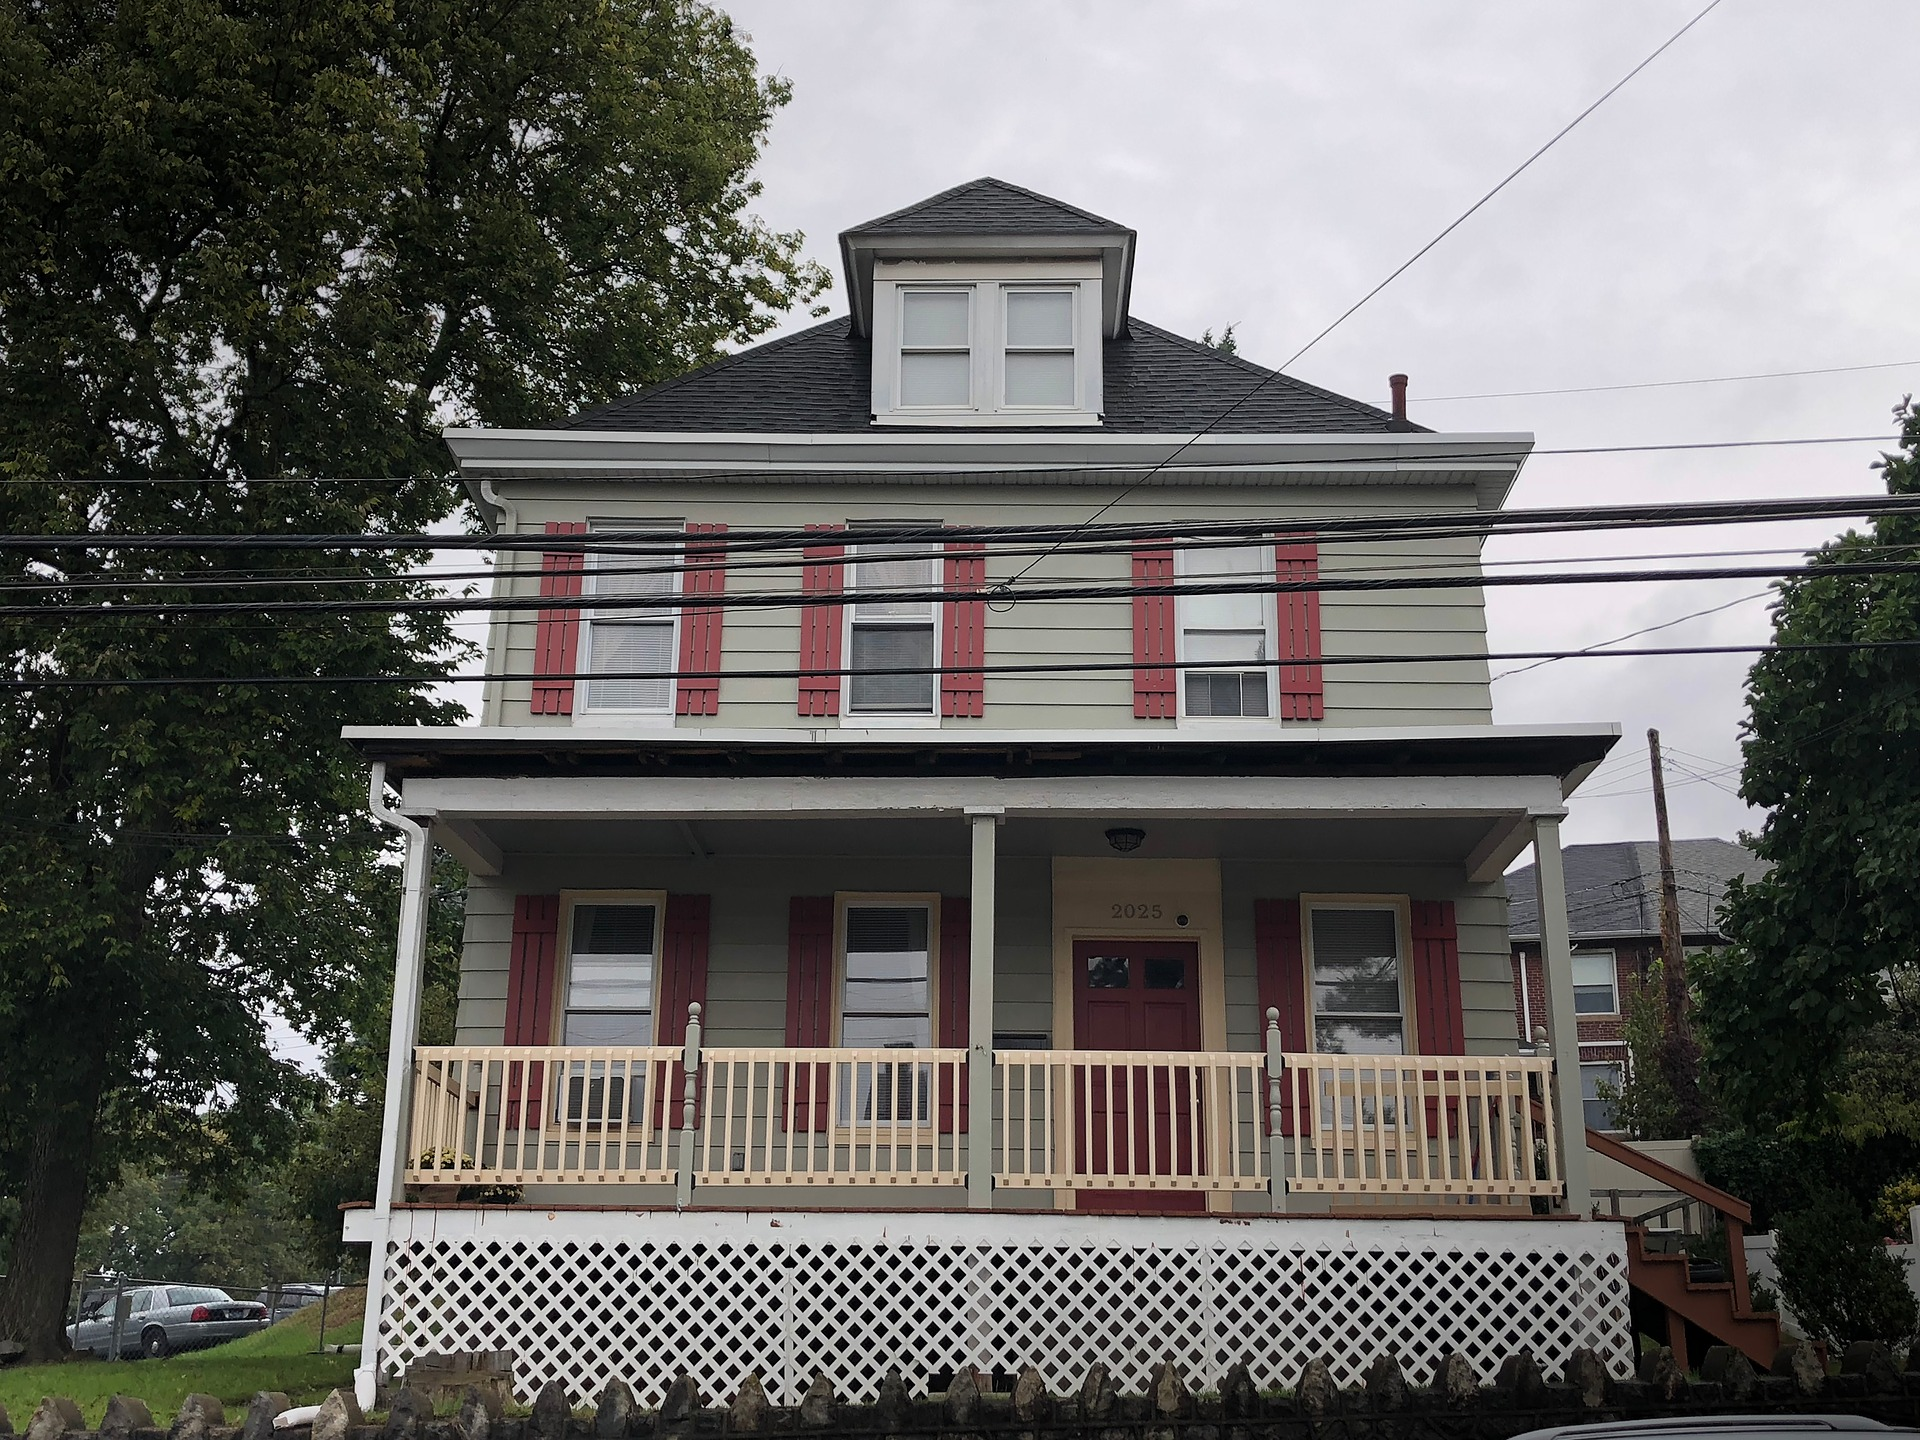 Easton -  4 bedroom, 3 bath $189,900